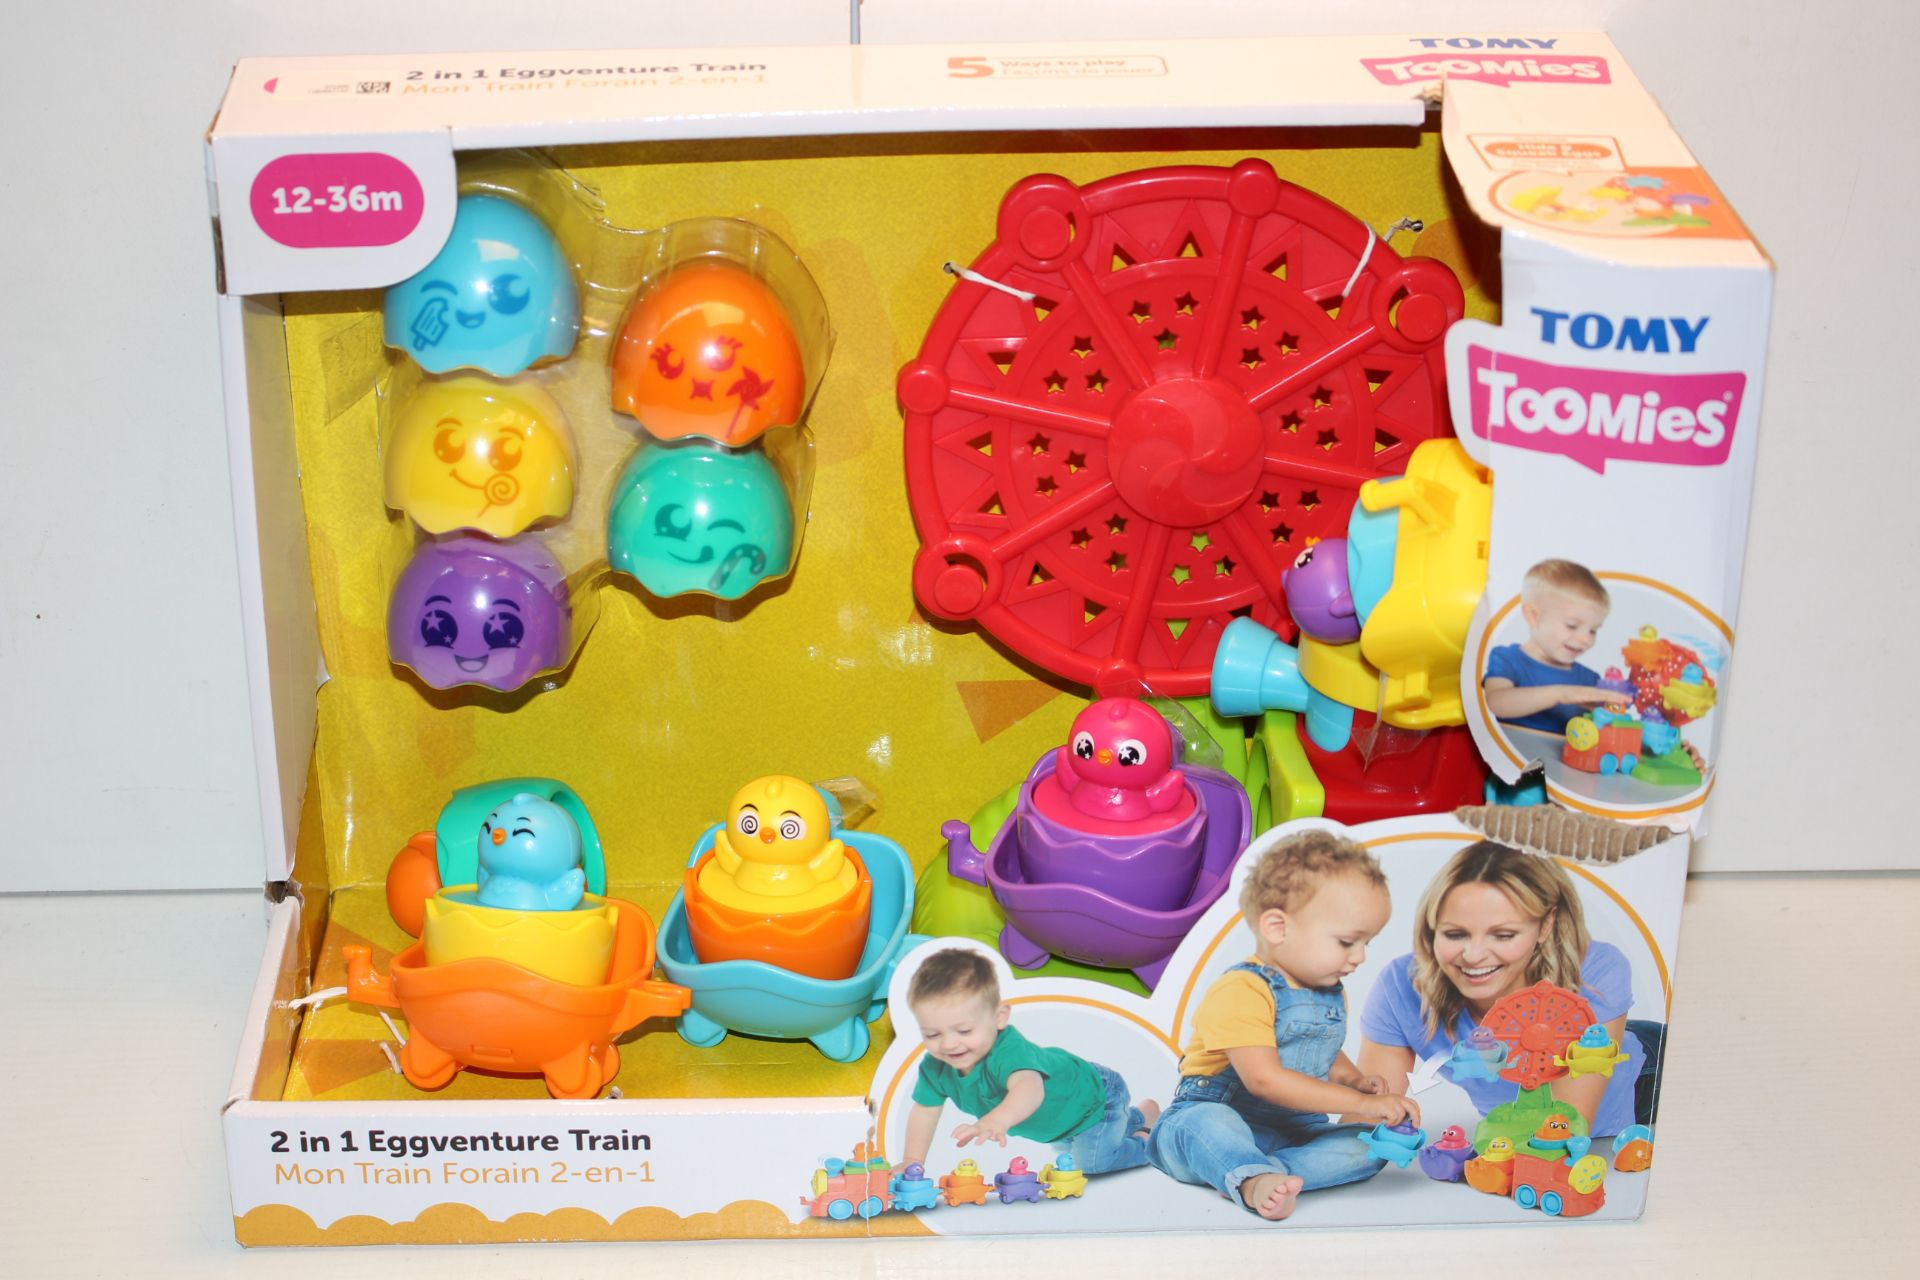 BOXED TOMY TOOMIES 2-IN-1 EGGVENTURE TRAIN 12-36MCondition ReportAppraisal Available on Request- All